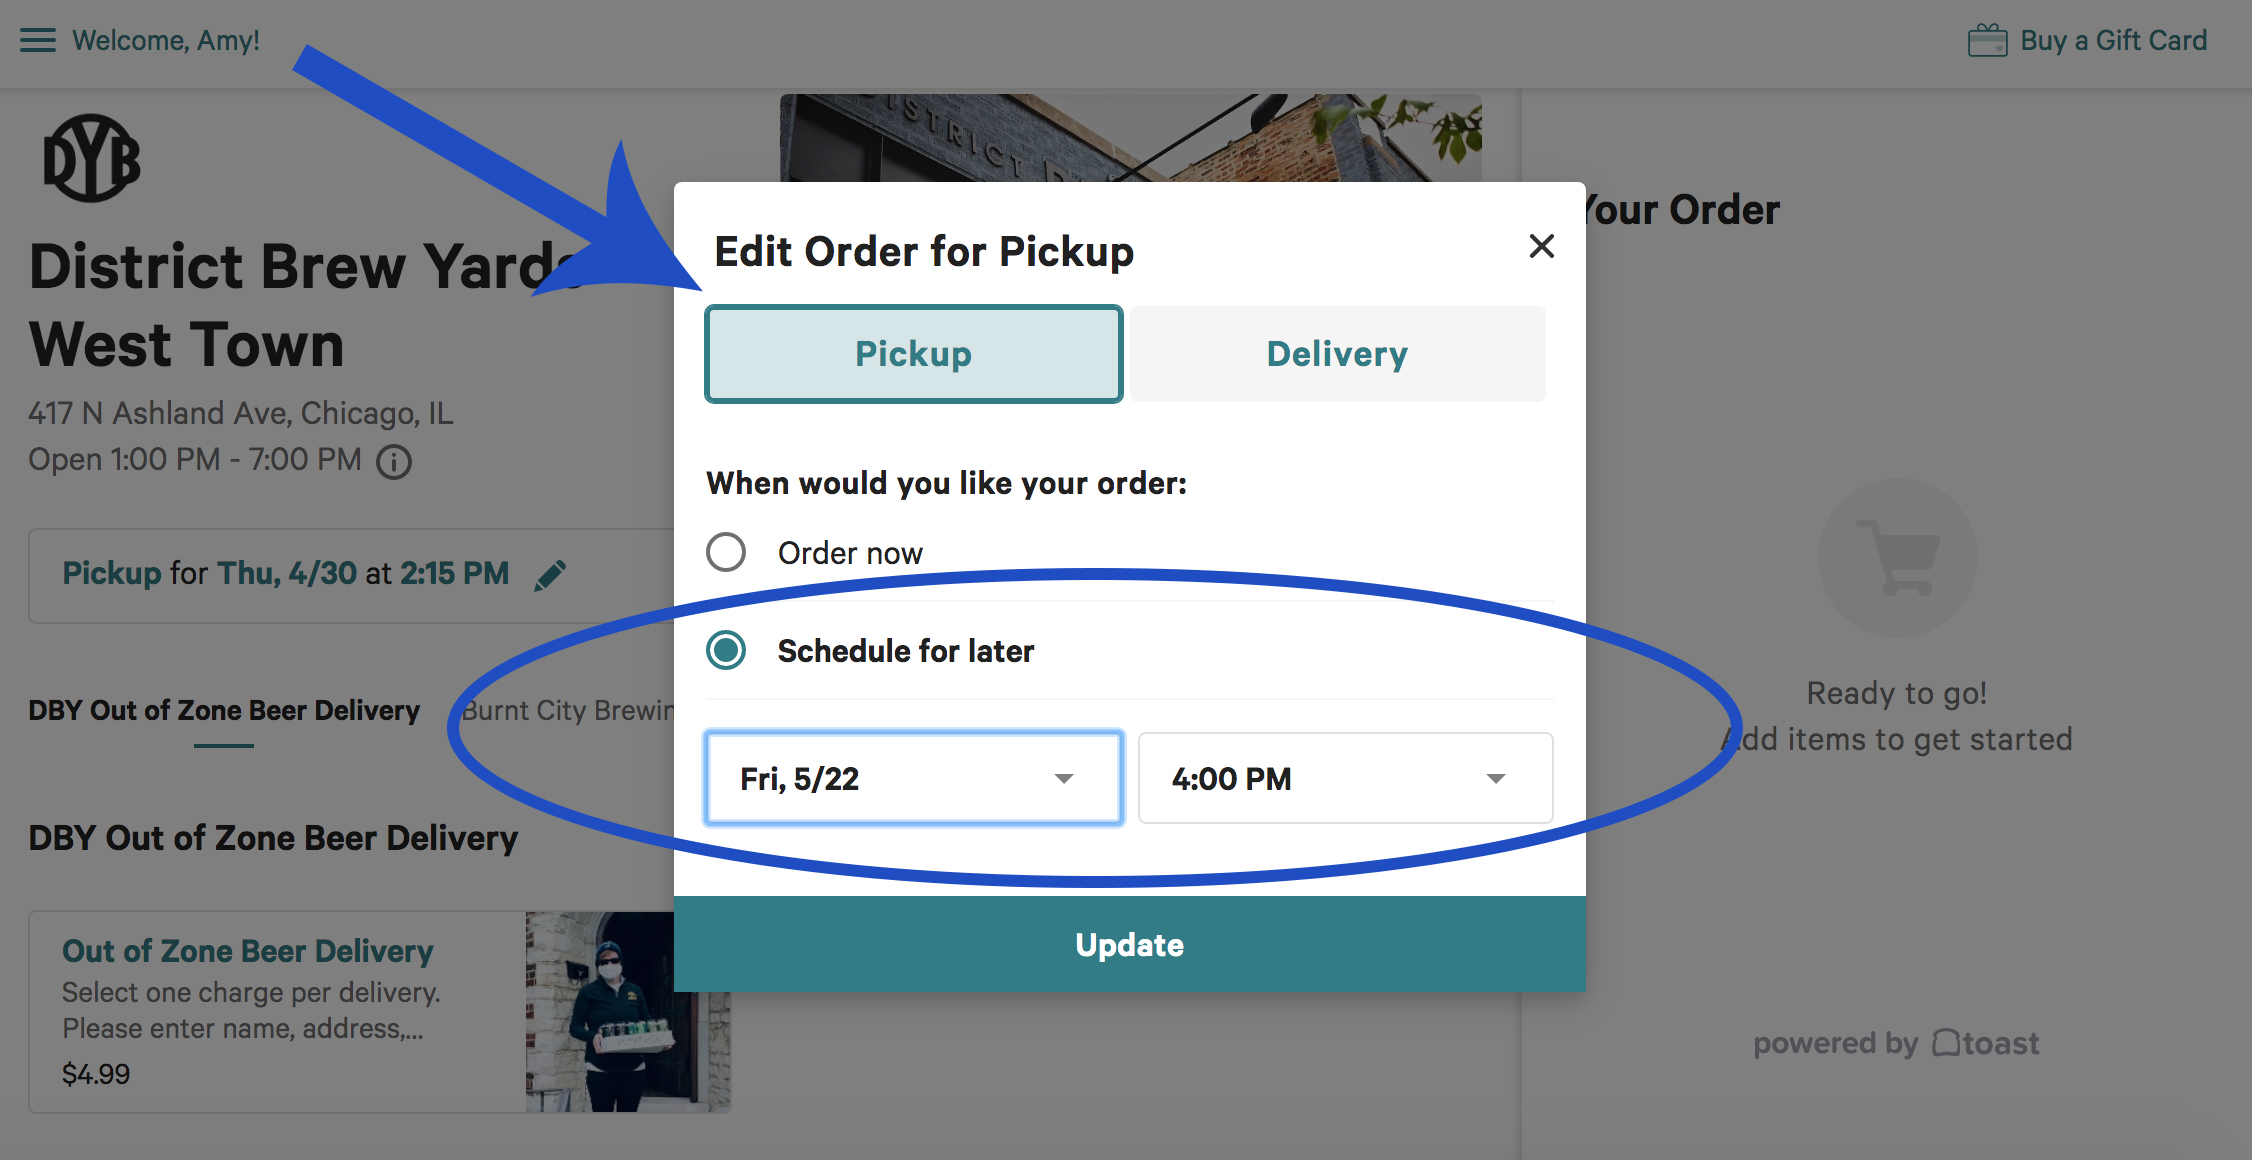 Select pickup, it will be faded blue. Select the delivery date for your relevant area.